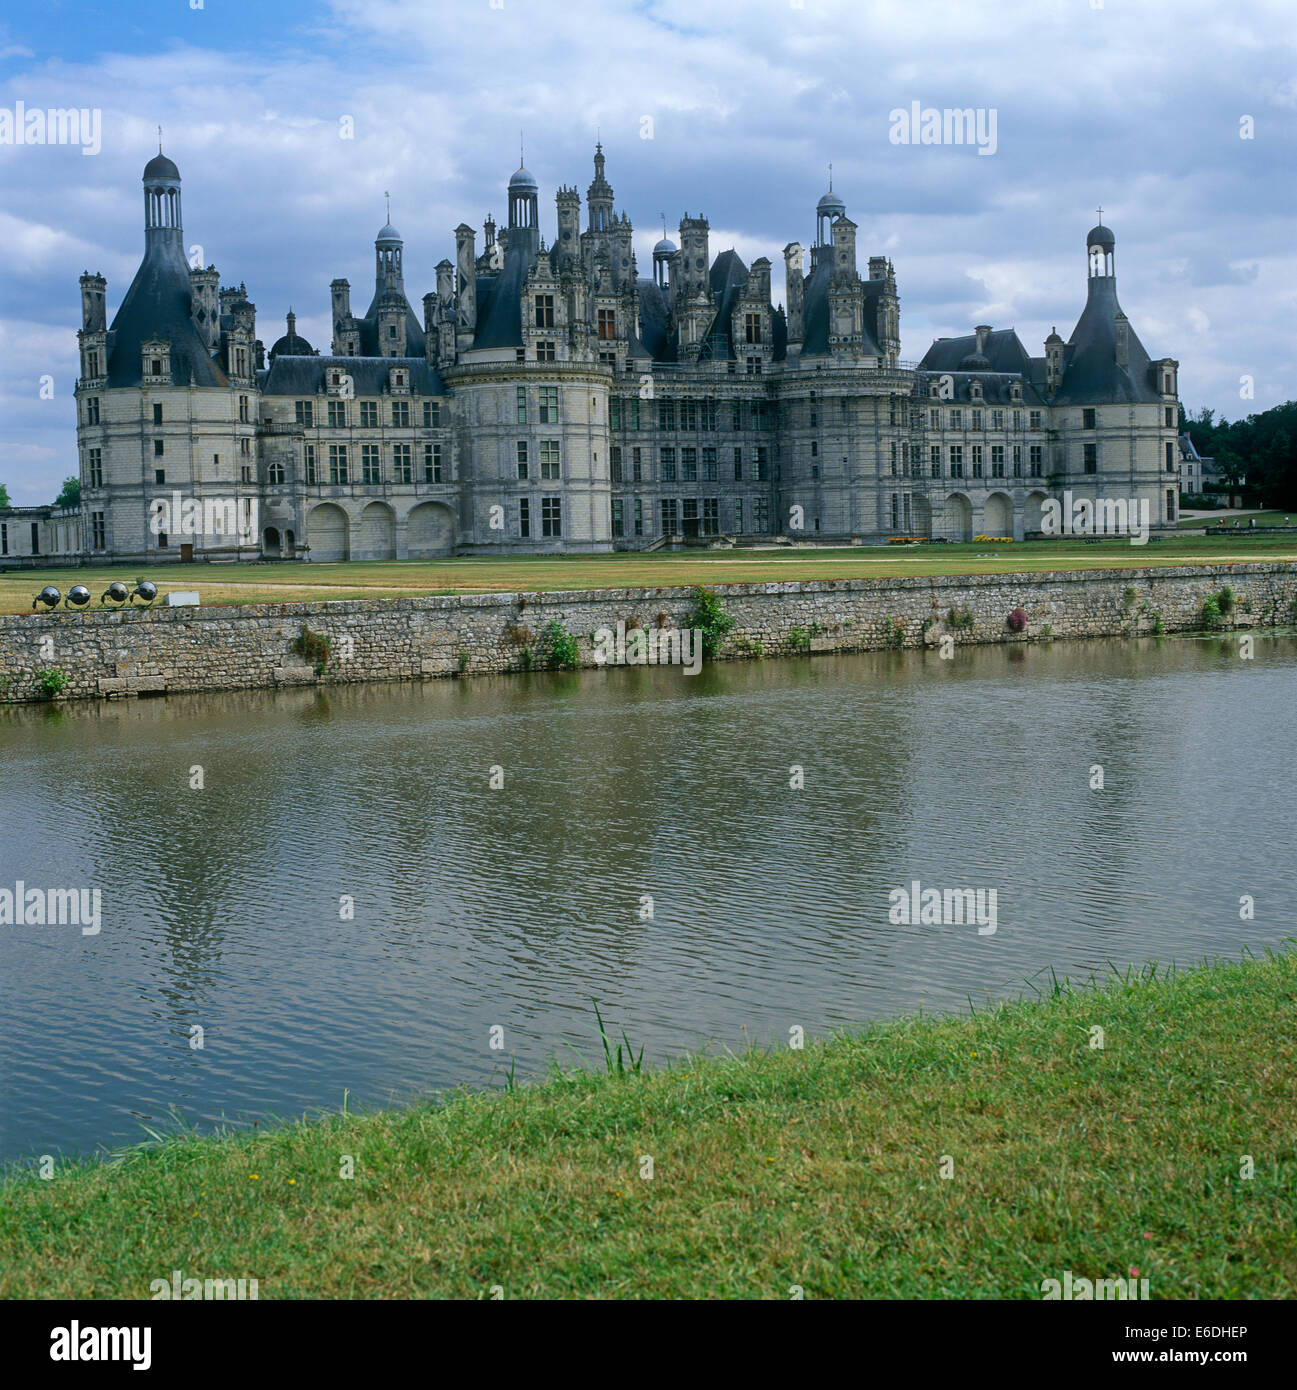 Chateau Chambord Loire Valley France - Stock Image